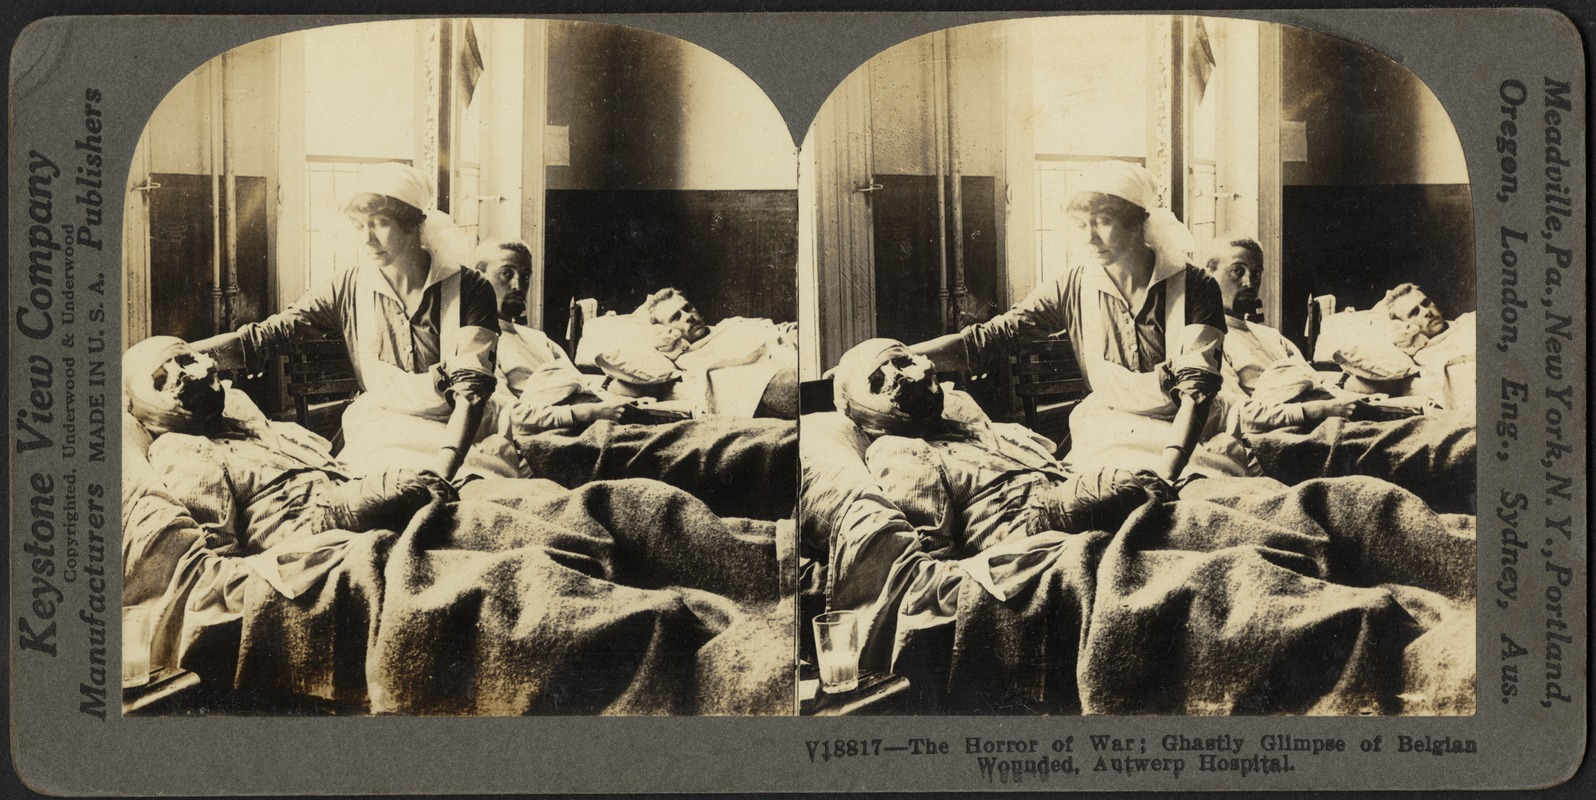 The horror of war: ghastly glimpse of Belgian wounded, Antwerp hospital